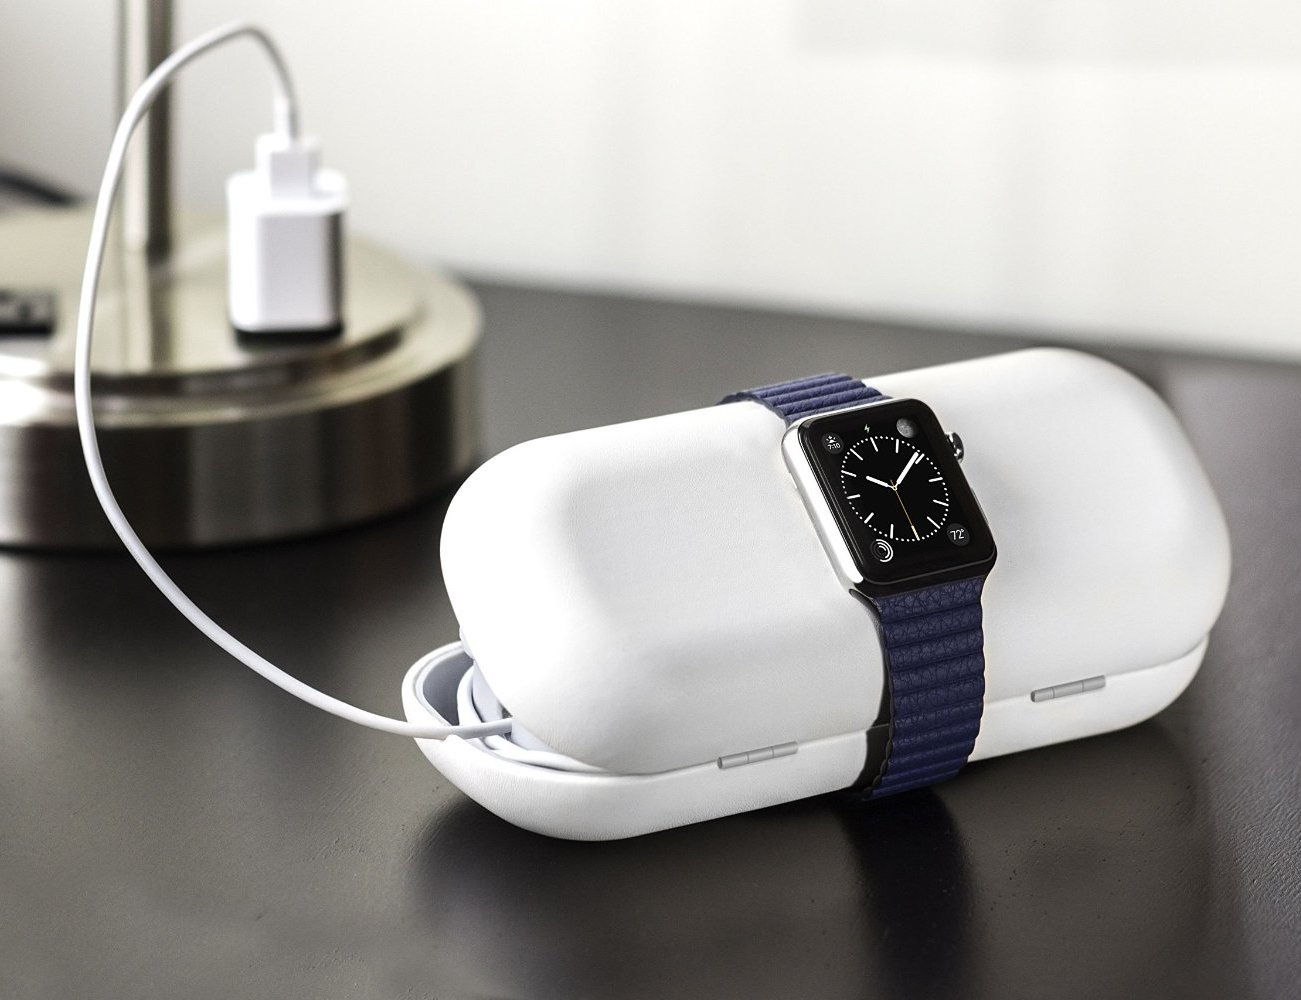 Apple+Watch+Travel+Case+%26+Charger